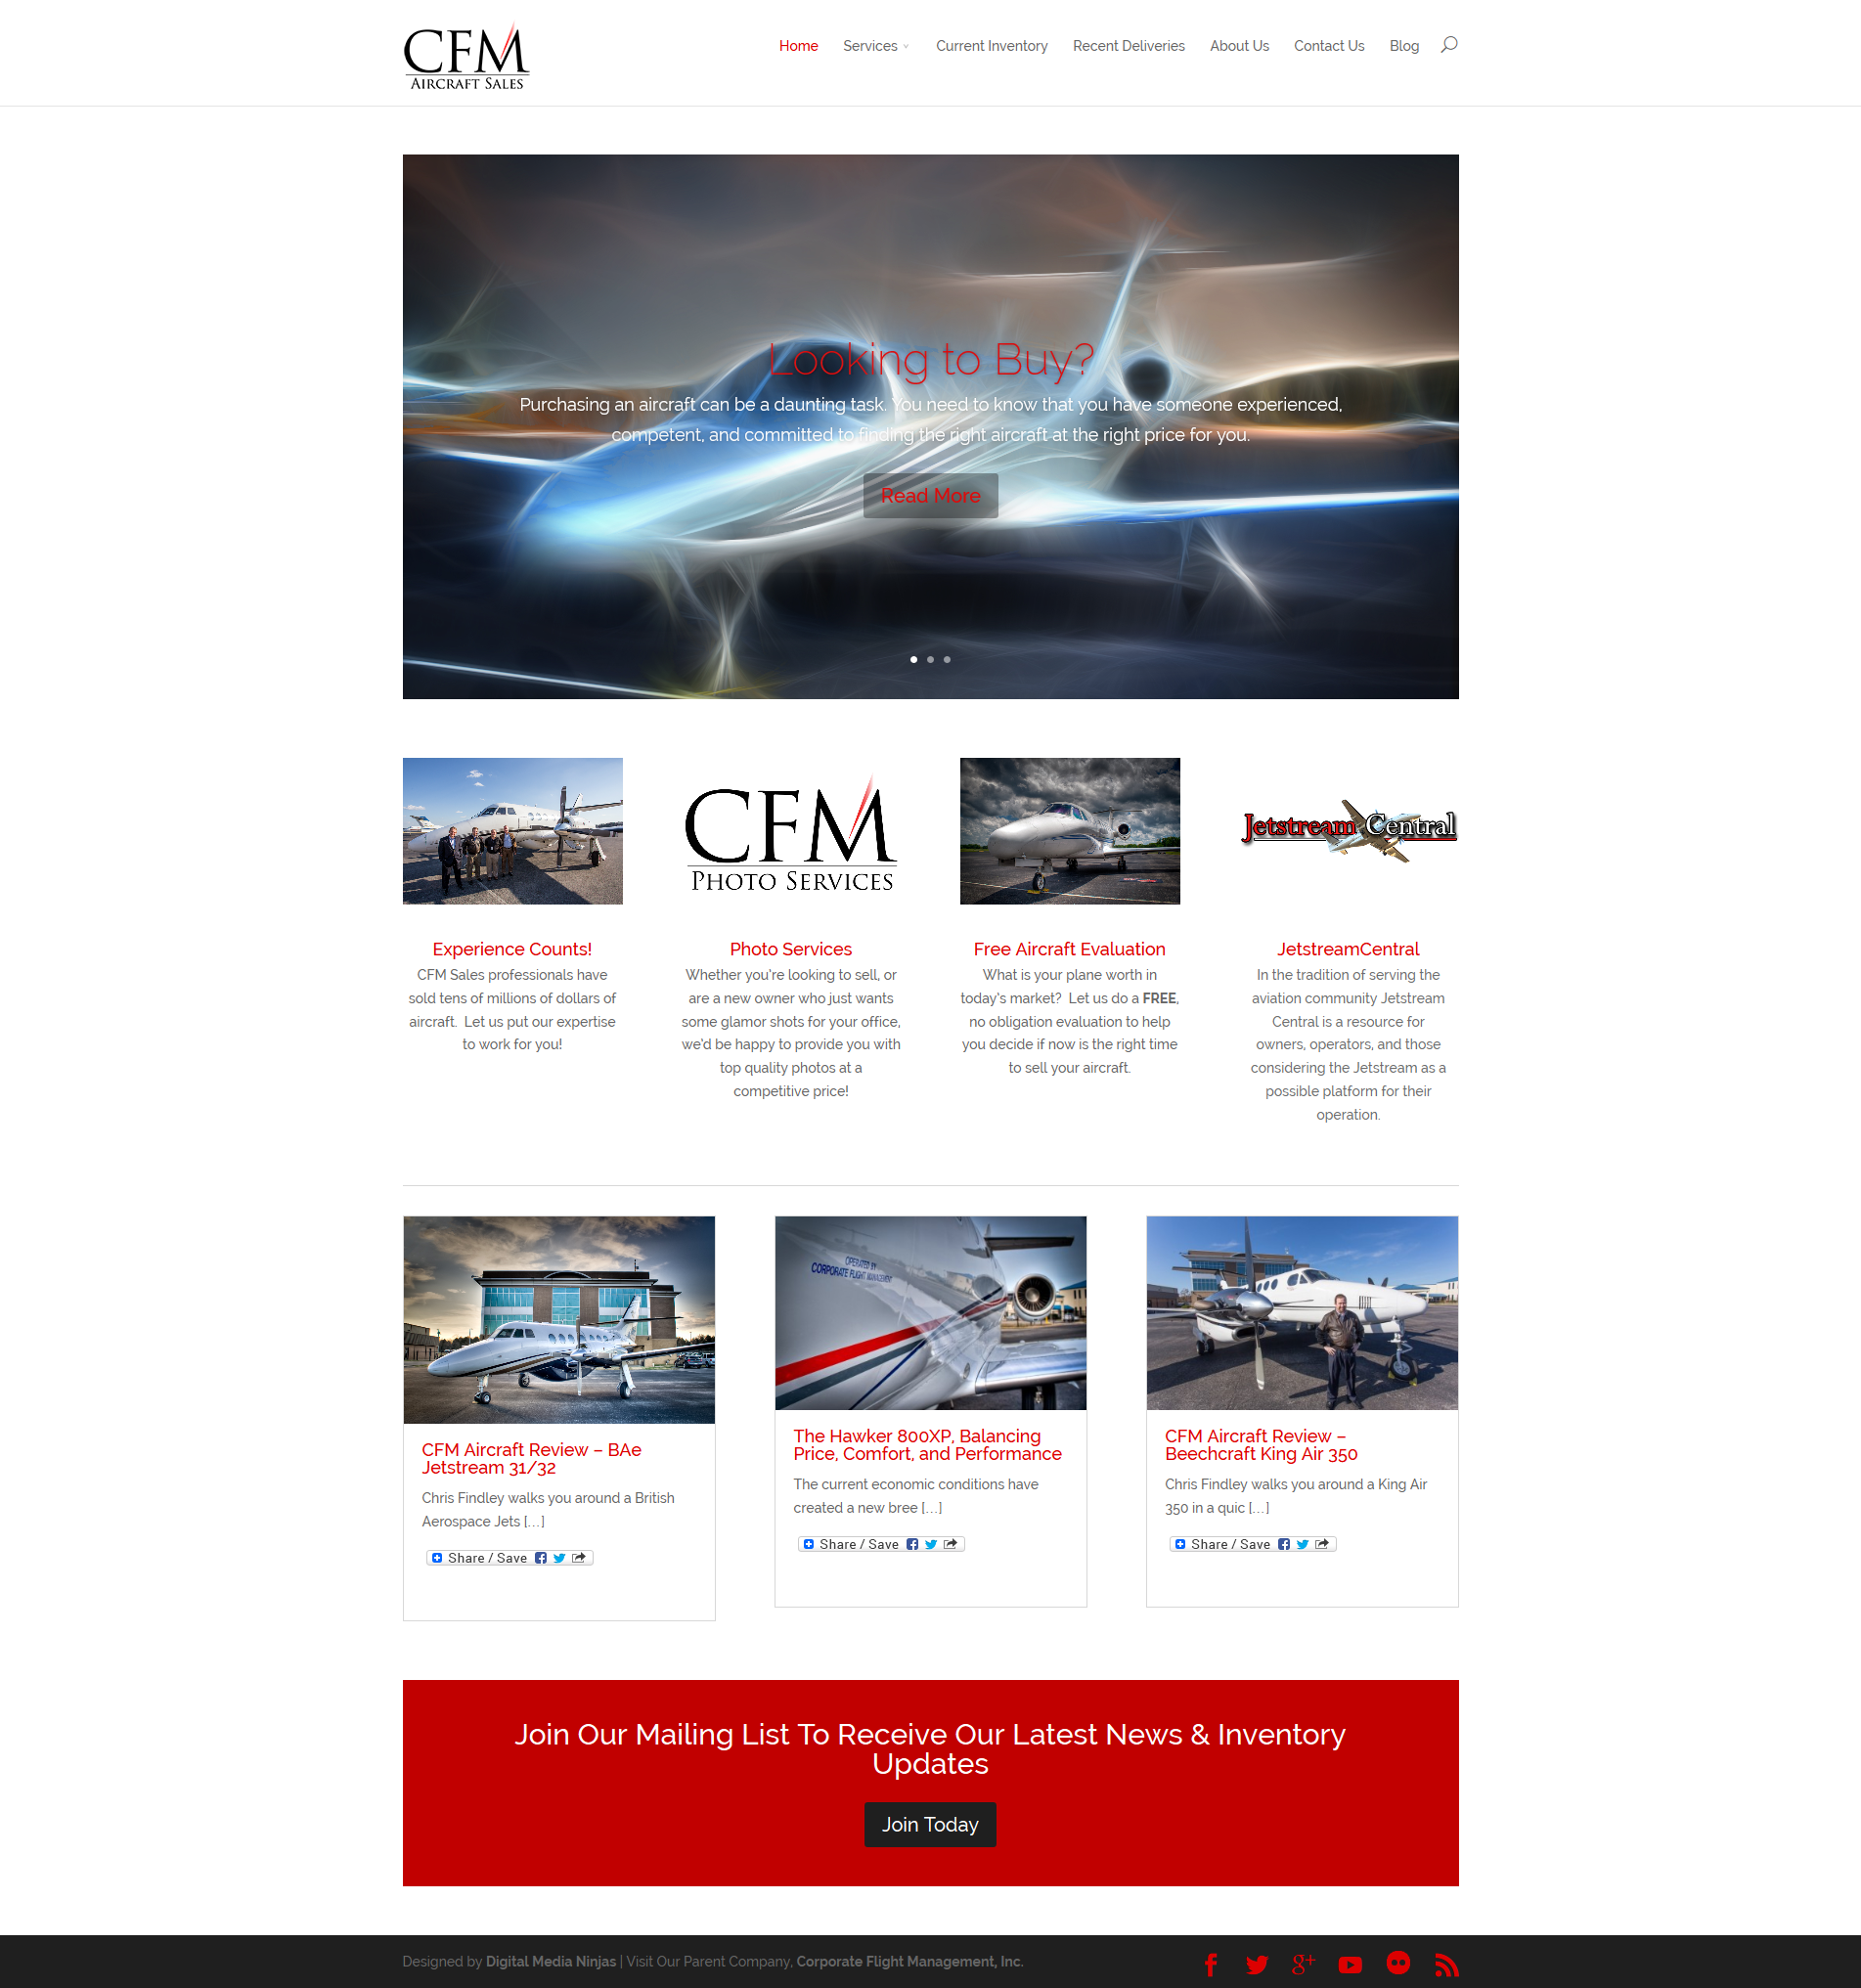 CFM Aircraft Sales Home Page